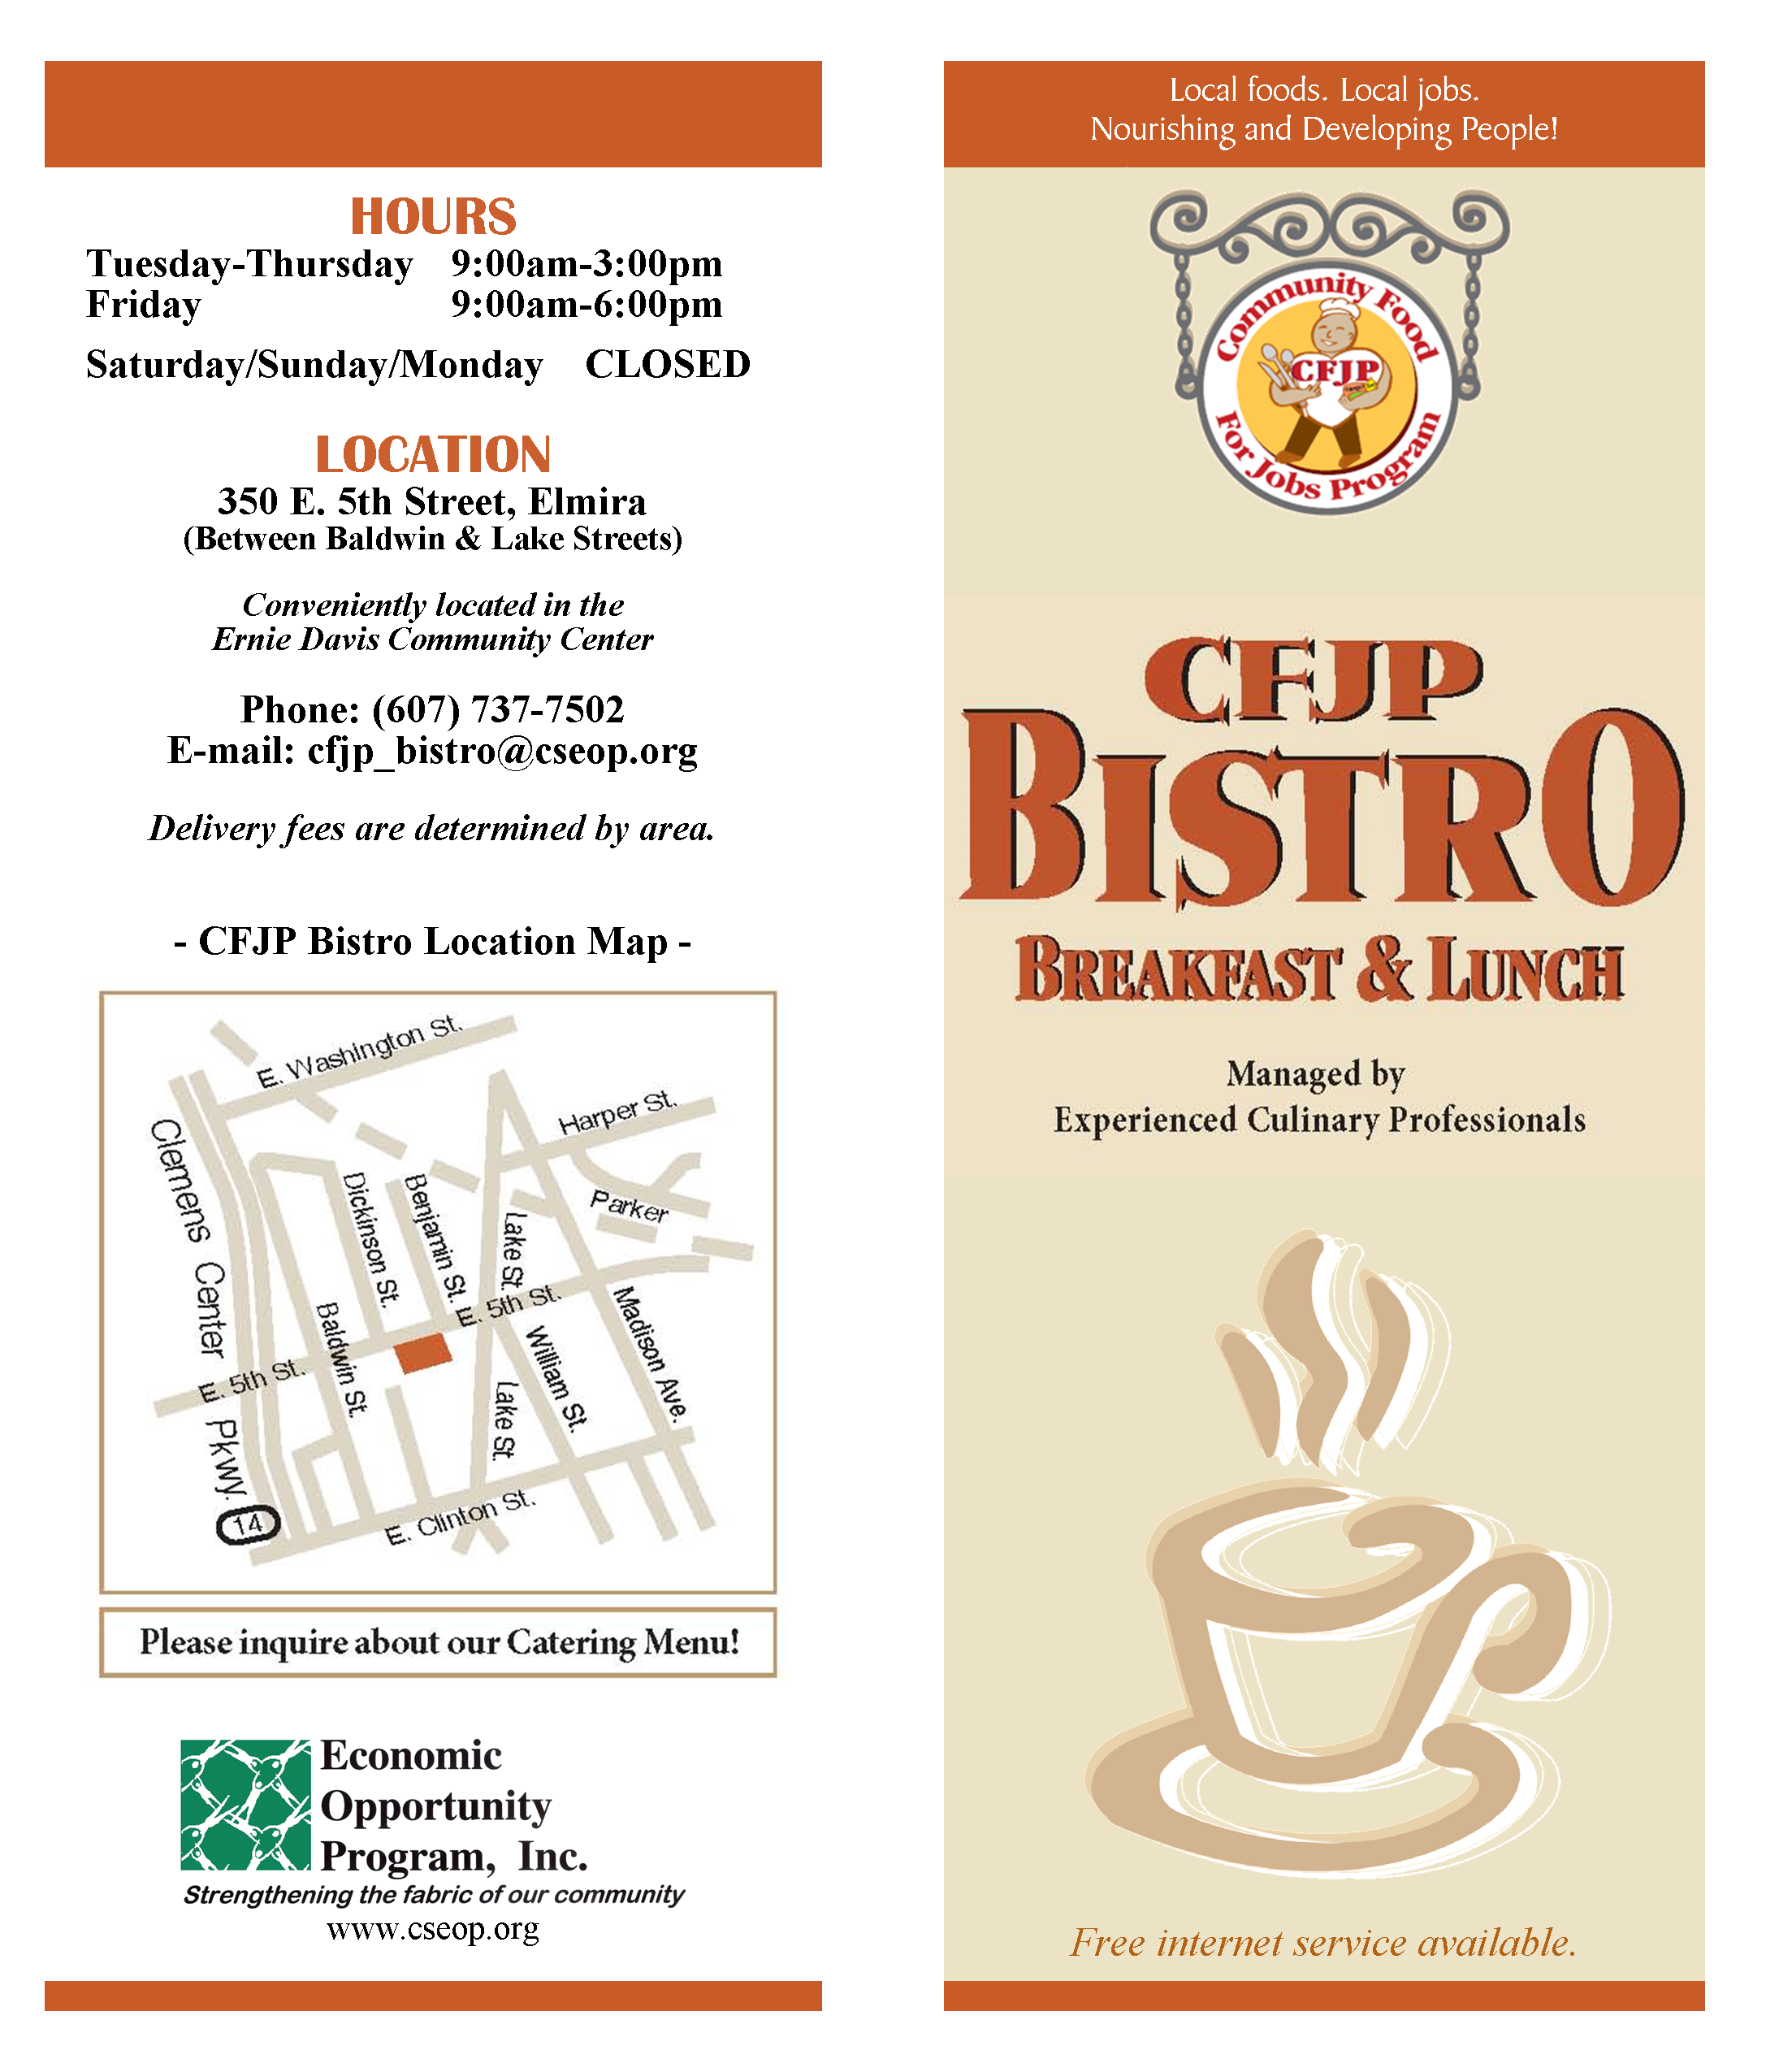 Bistro MENU NEW April 2017 - p1a.png